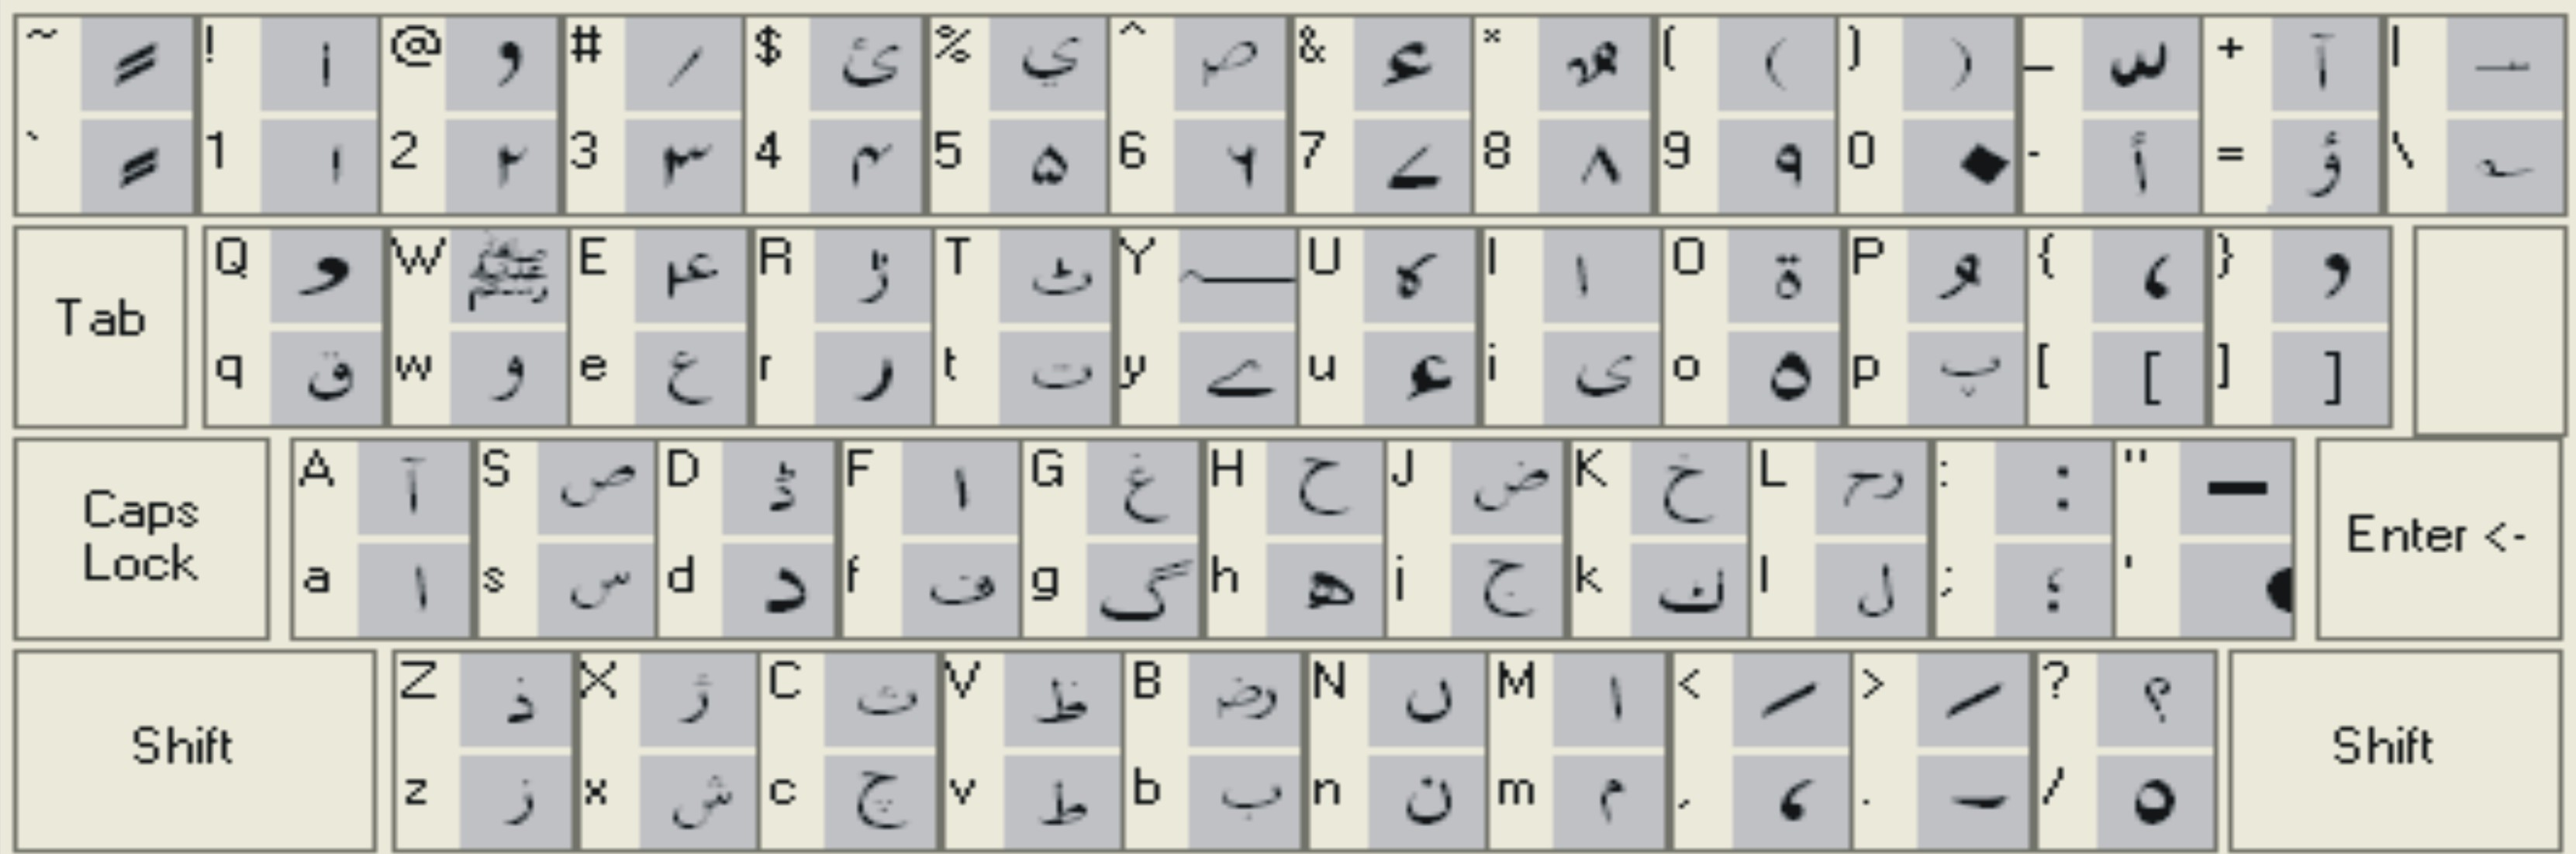 Urdu keyboard - Wikipedia